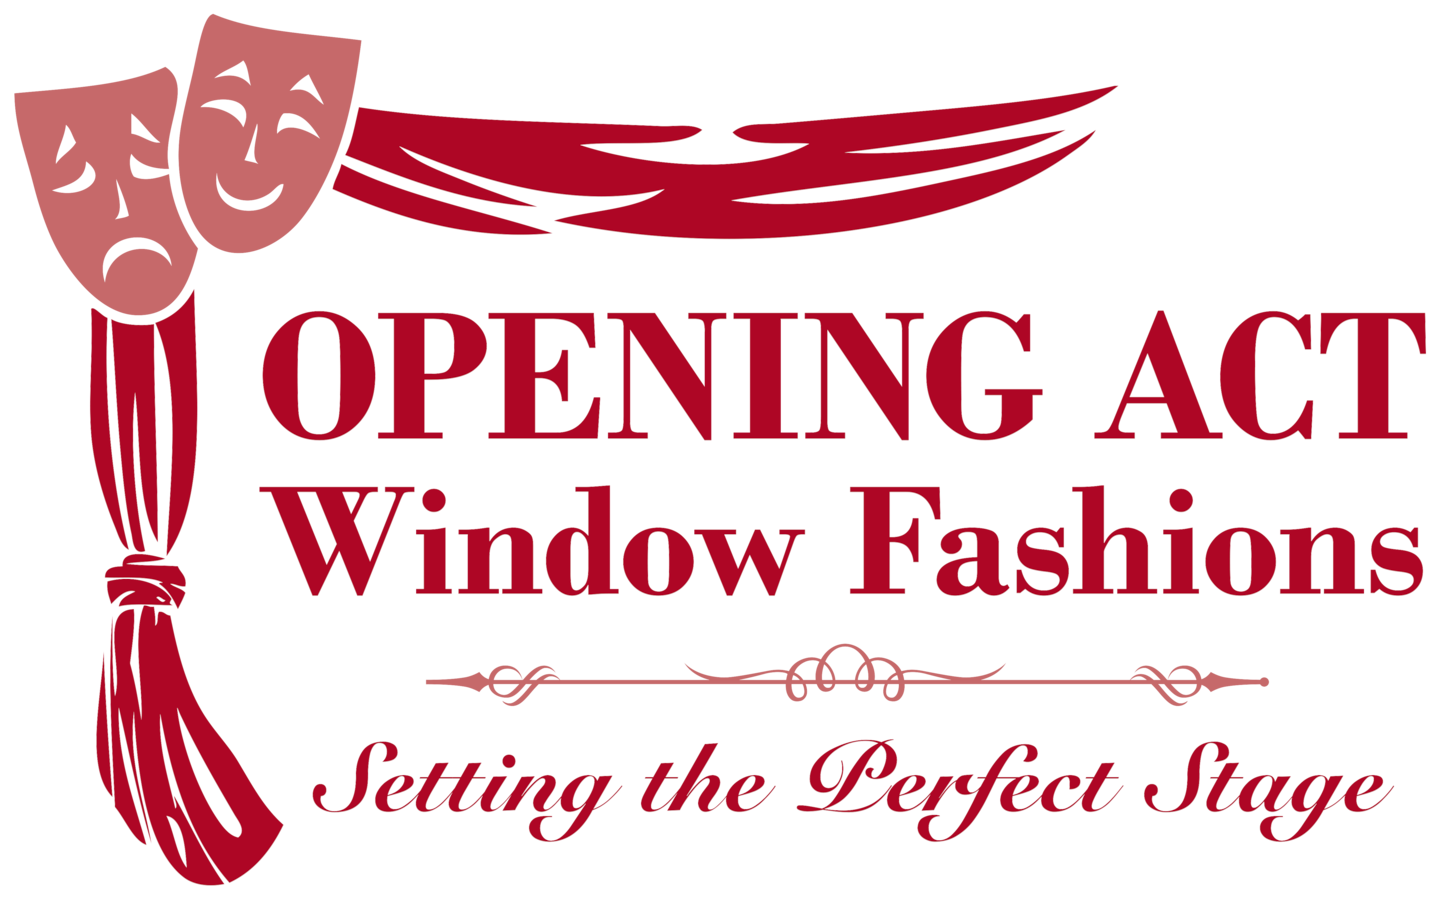 OPENING ACT WINDOW FASHIONS